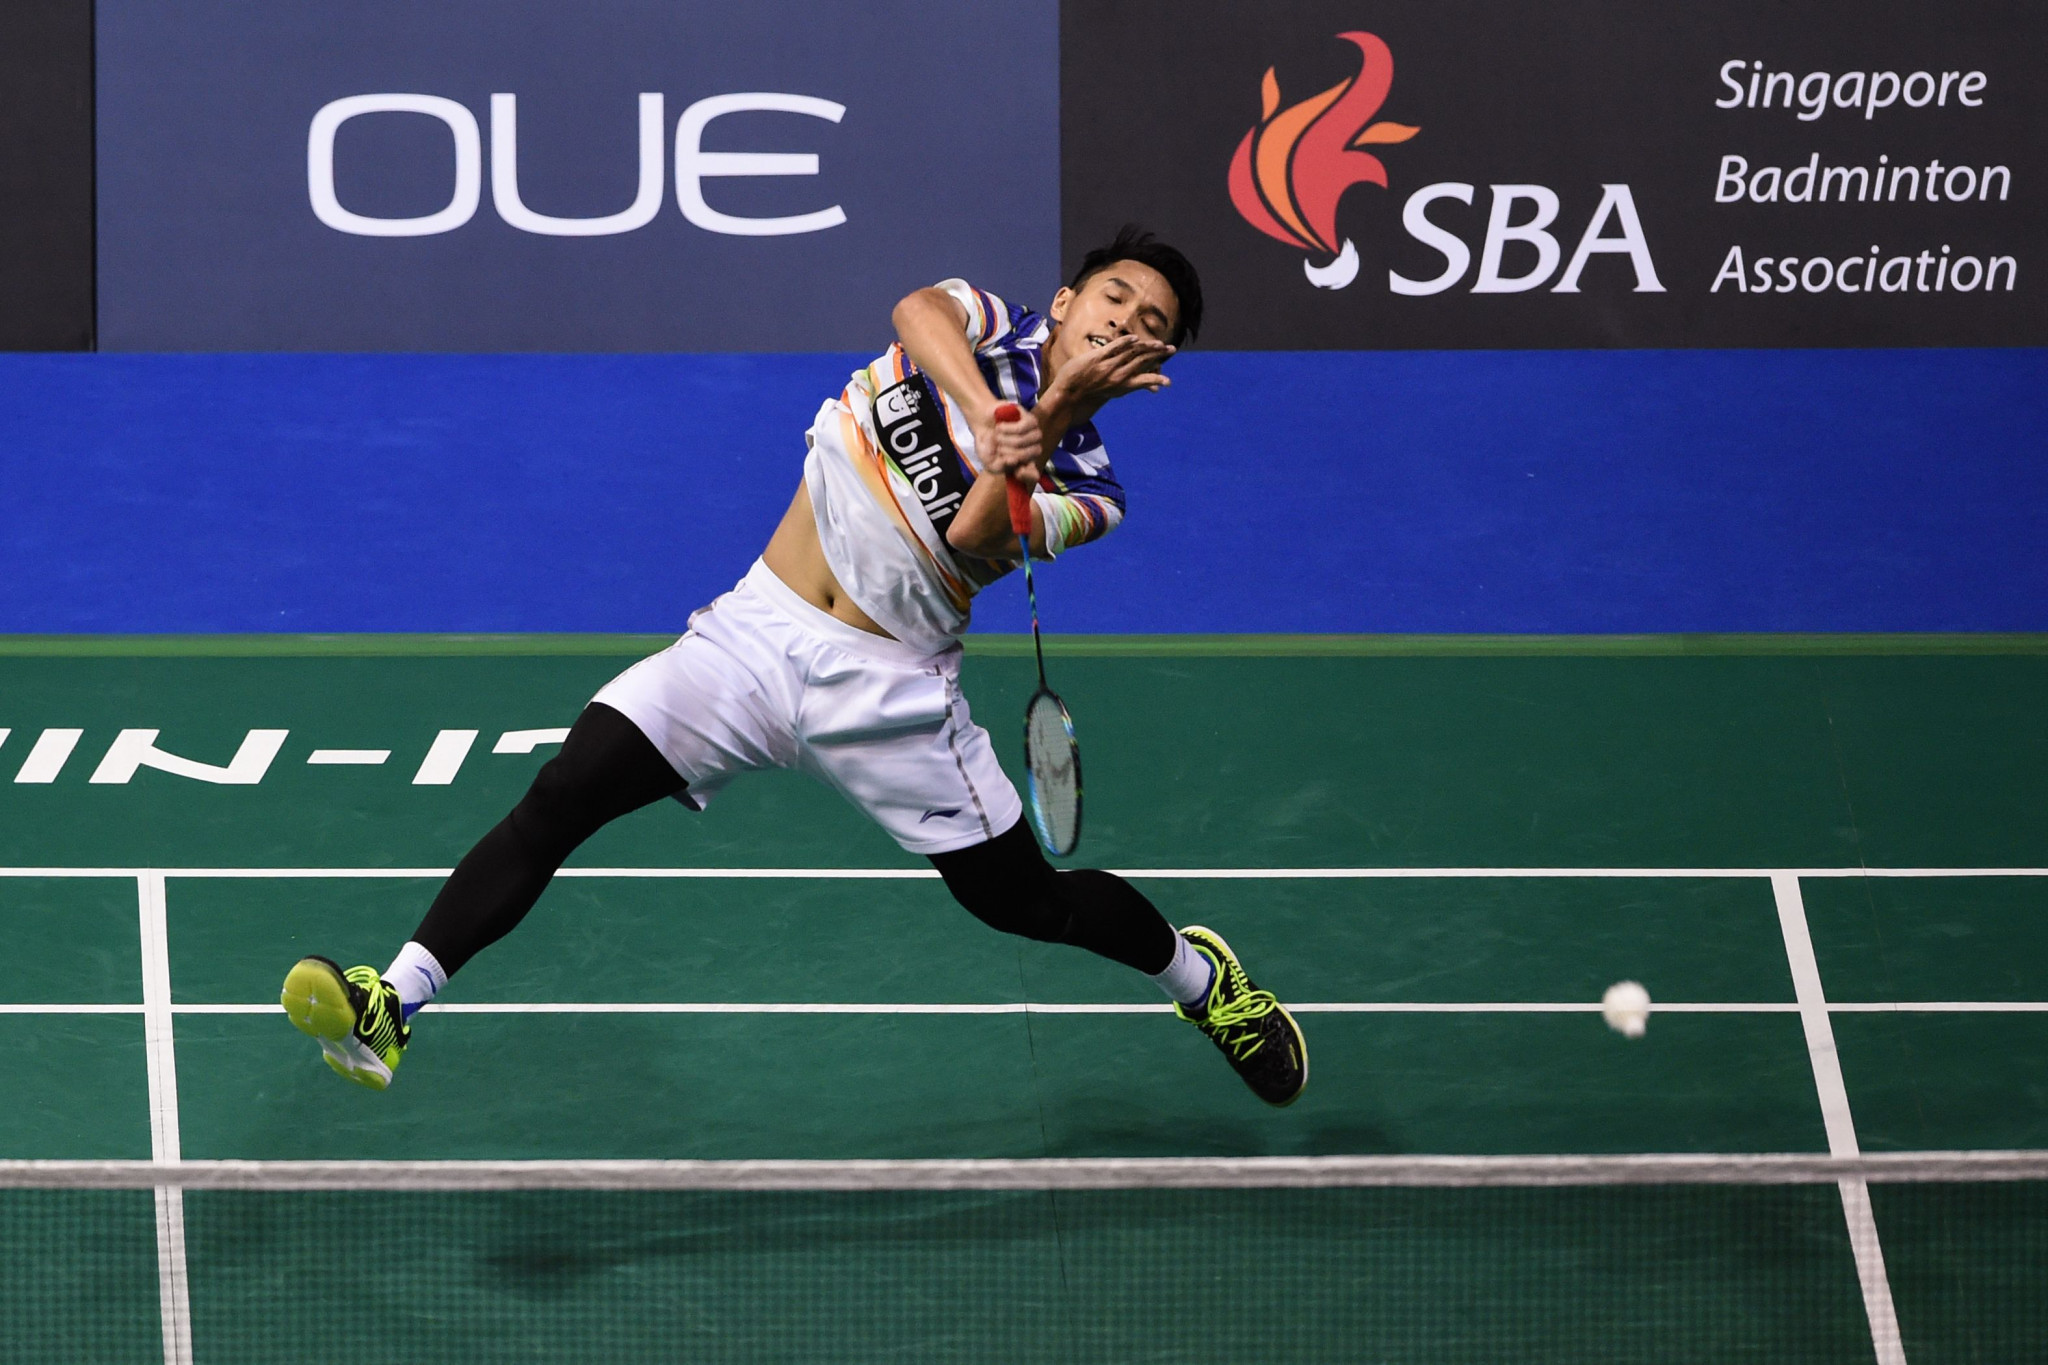 Jonatan Christie avoided an upset in the men's singles ©Getty Images